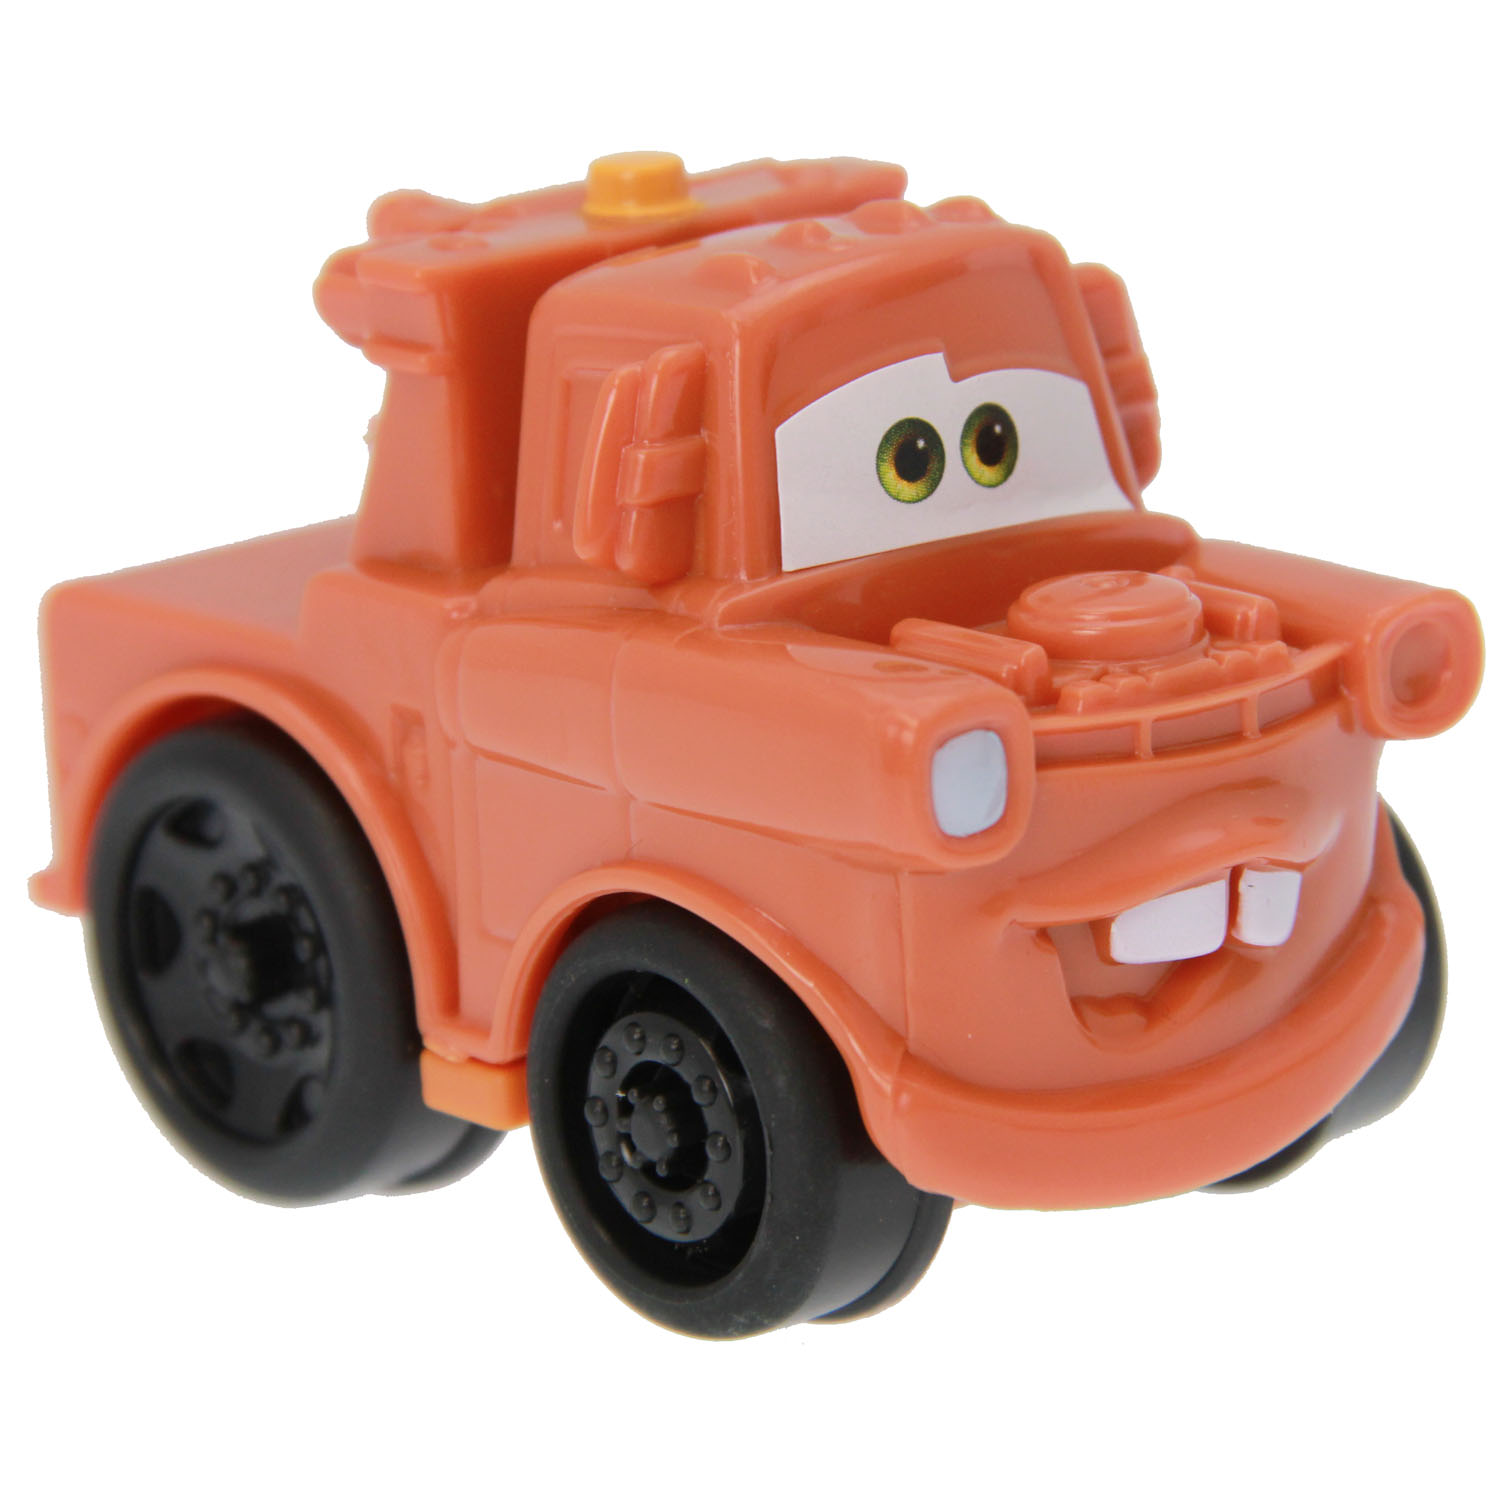 Disney Cars Toys Mater Wheelie at ToyStop